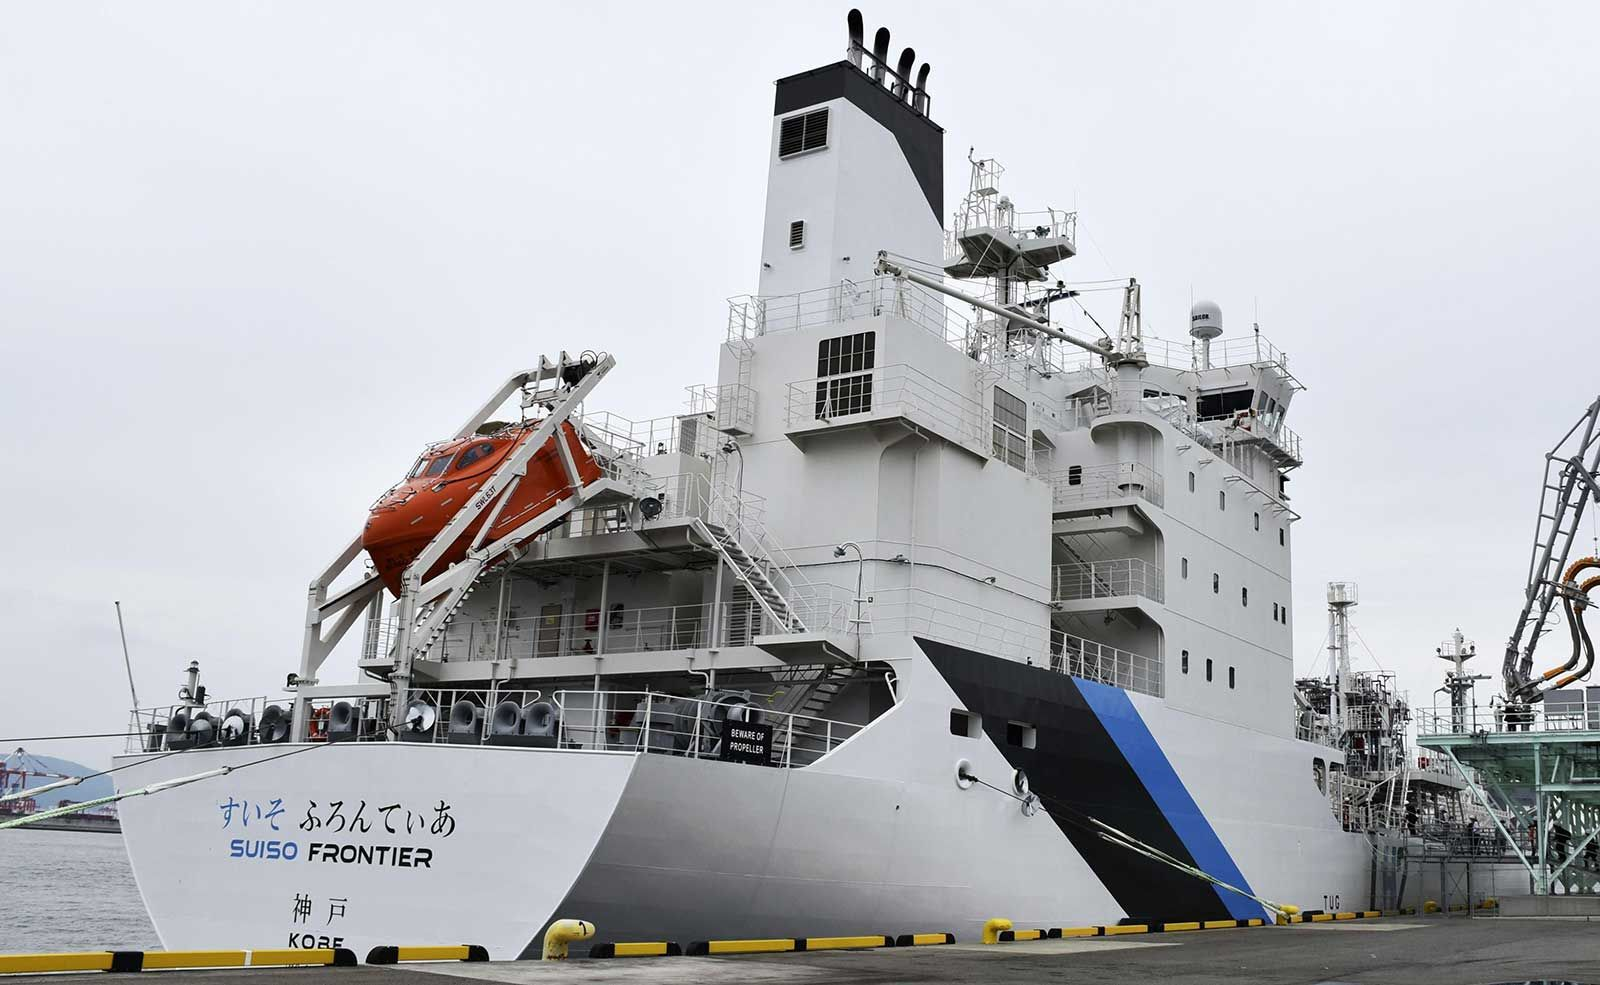 The Suiso Frontier is the world's first ship designed to transport liquid hydrogen.